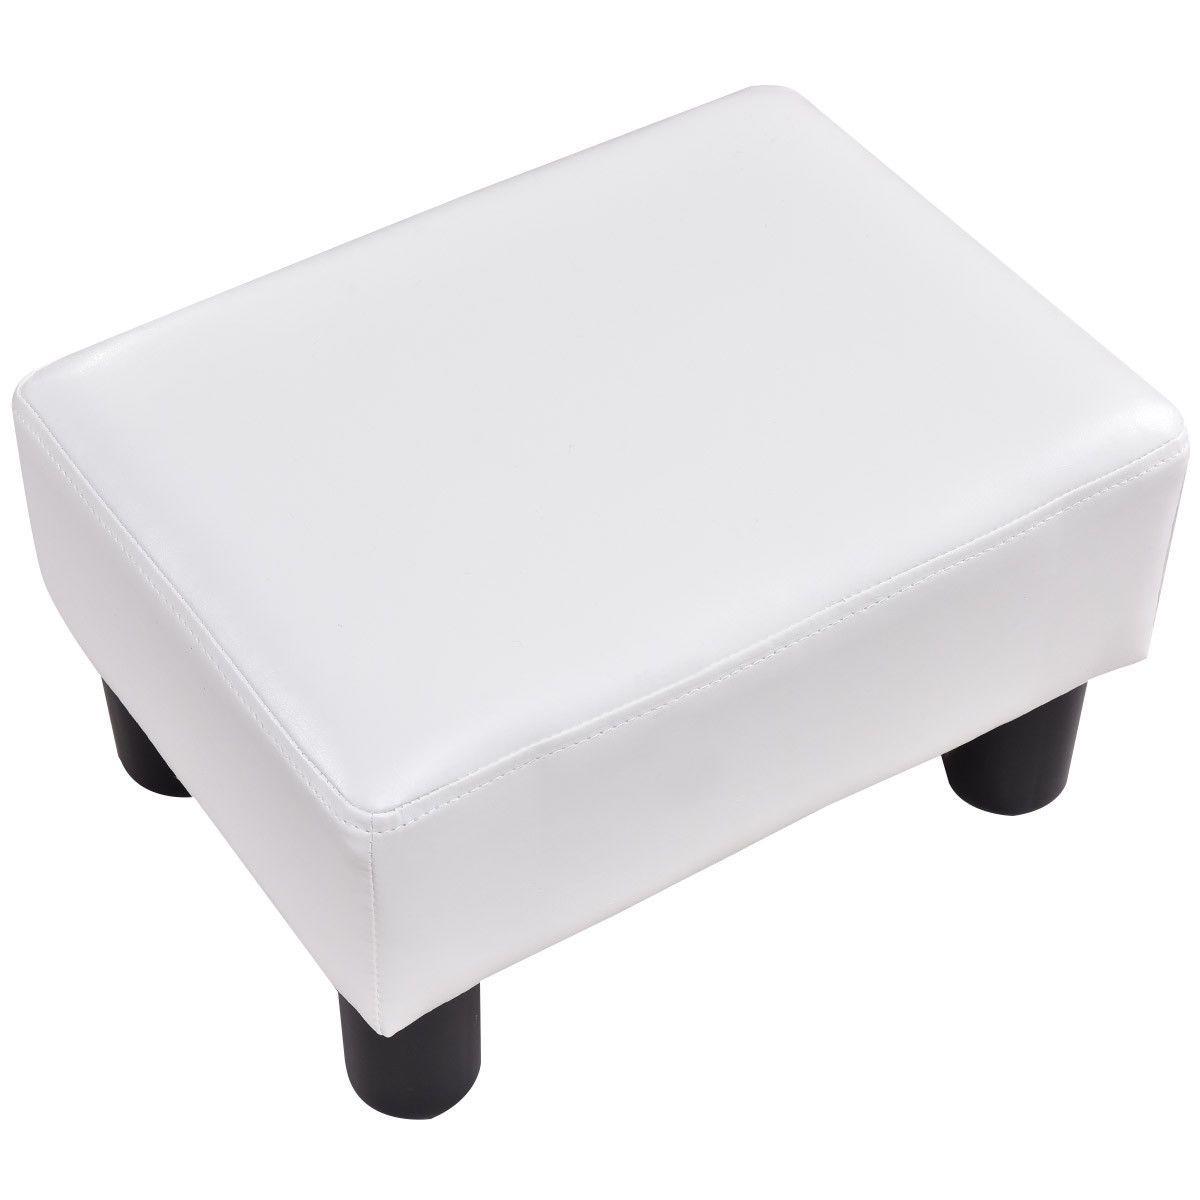 Small Pu Leather Rectangular Seat Ottoman Footstool White In 2020